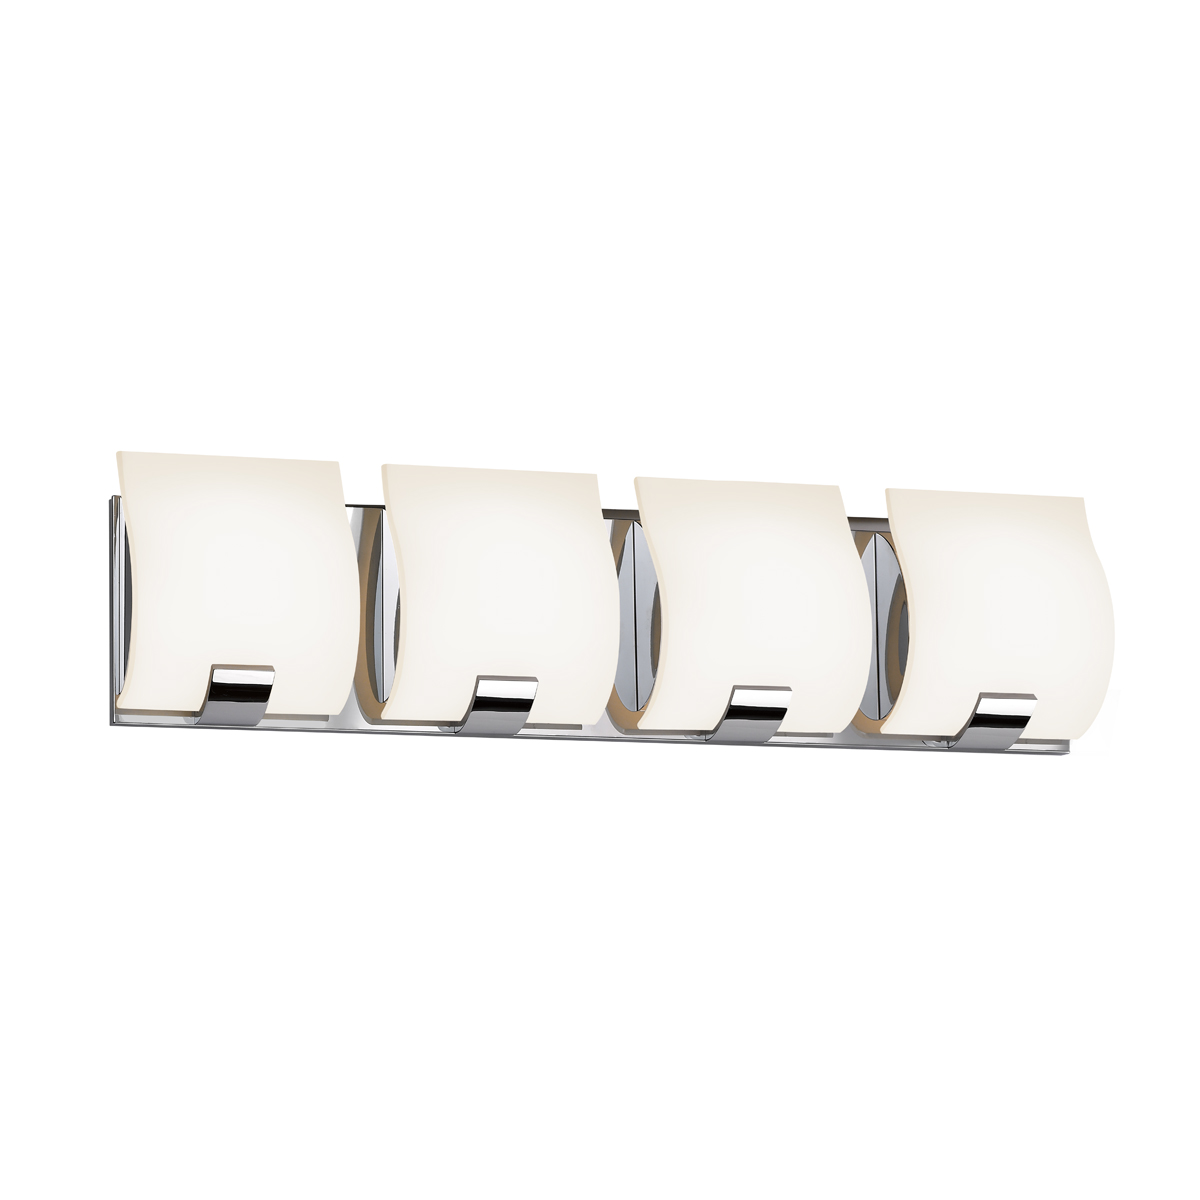 Sonneman Lighting (3884.01) Aquo 4-Light Bath Bar shown in Polished Chrome u0026 White Etched Glass ...